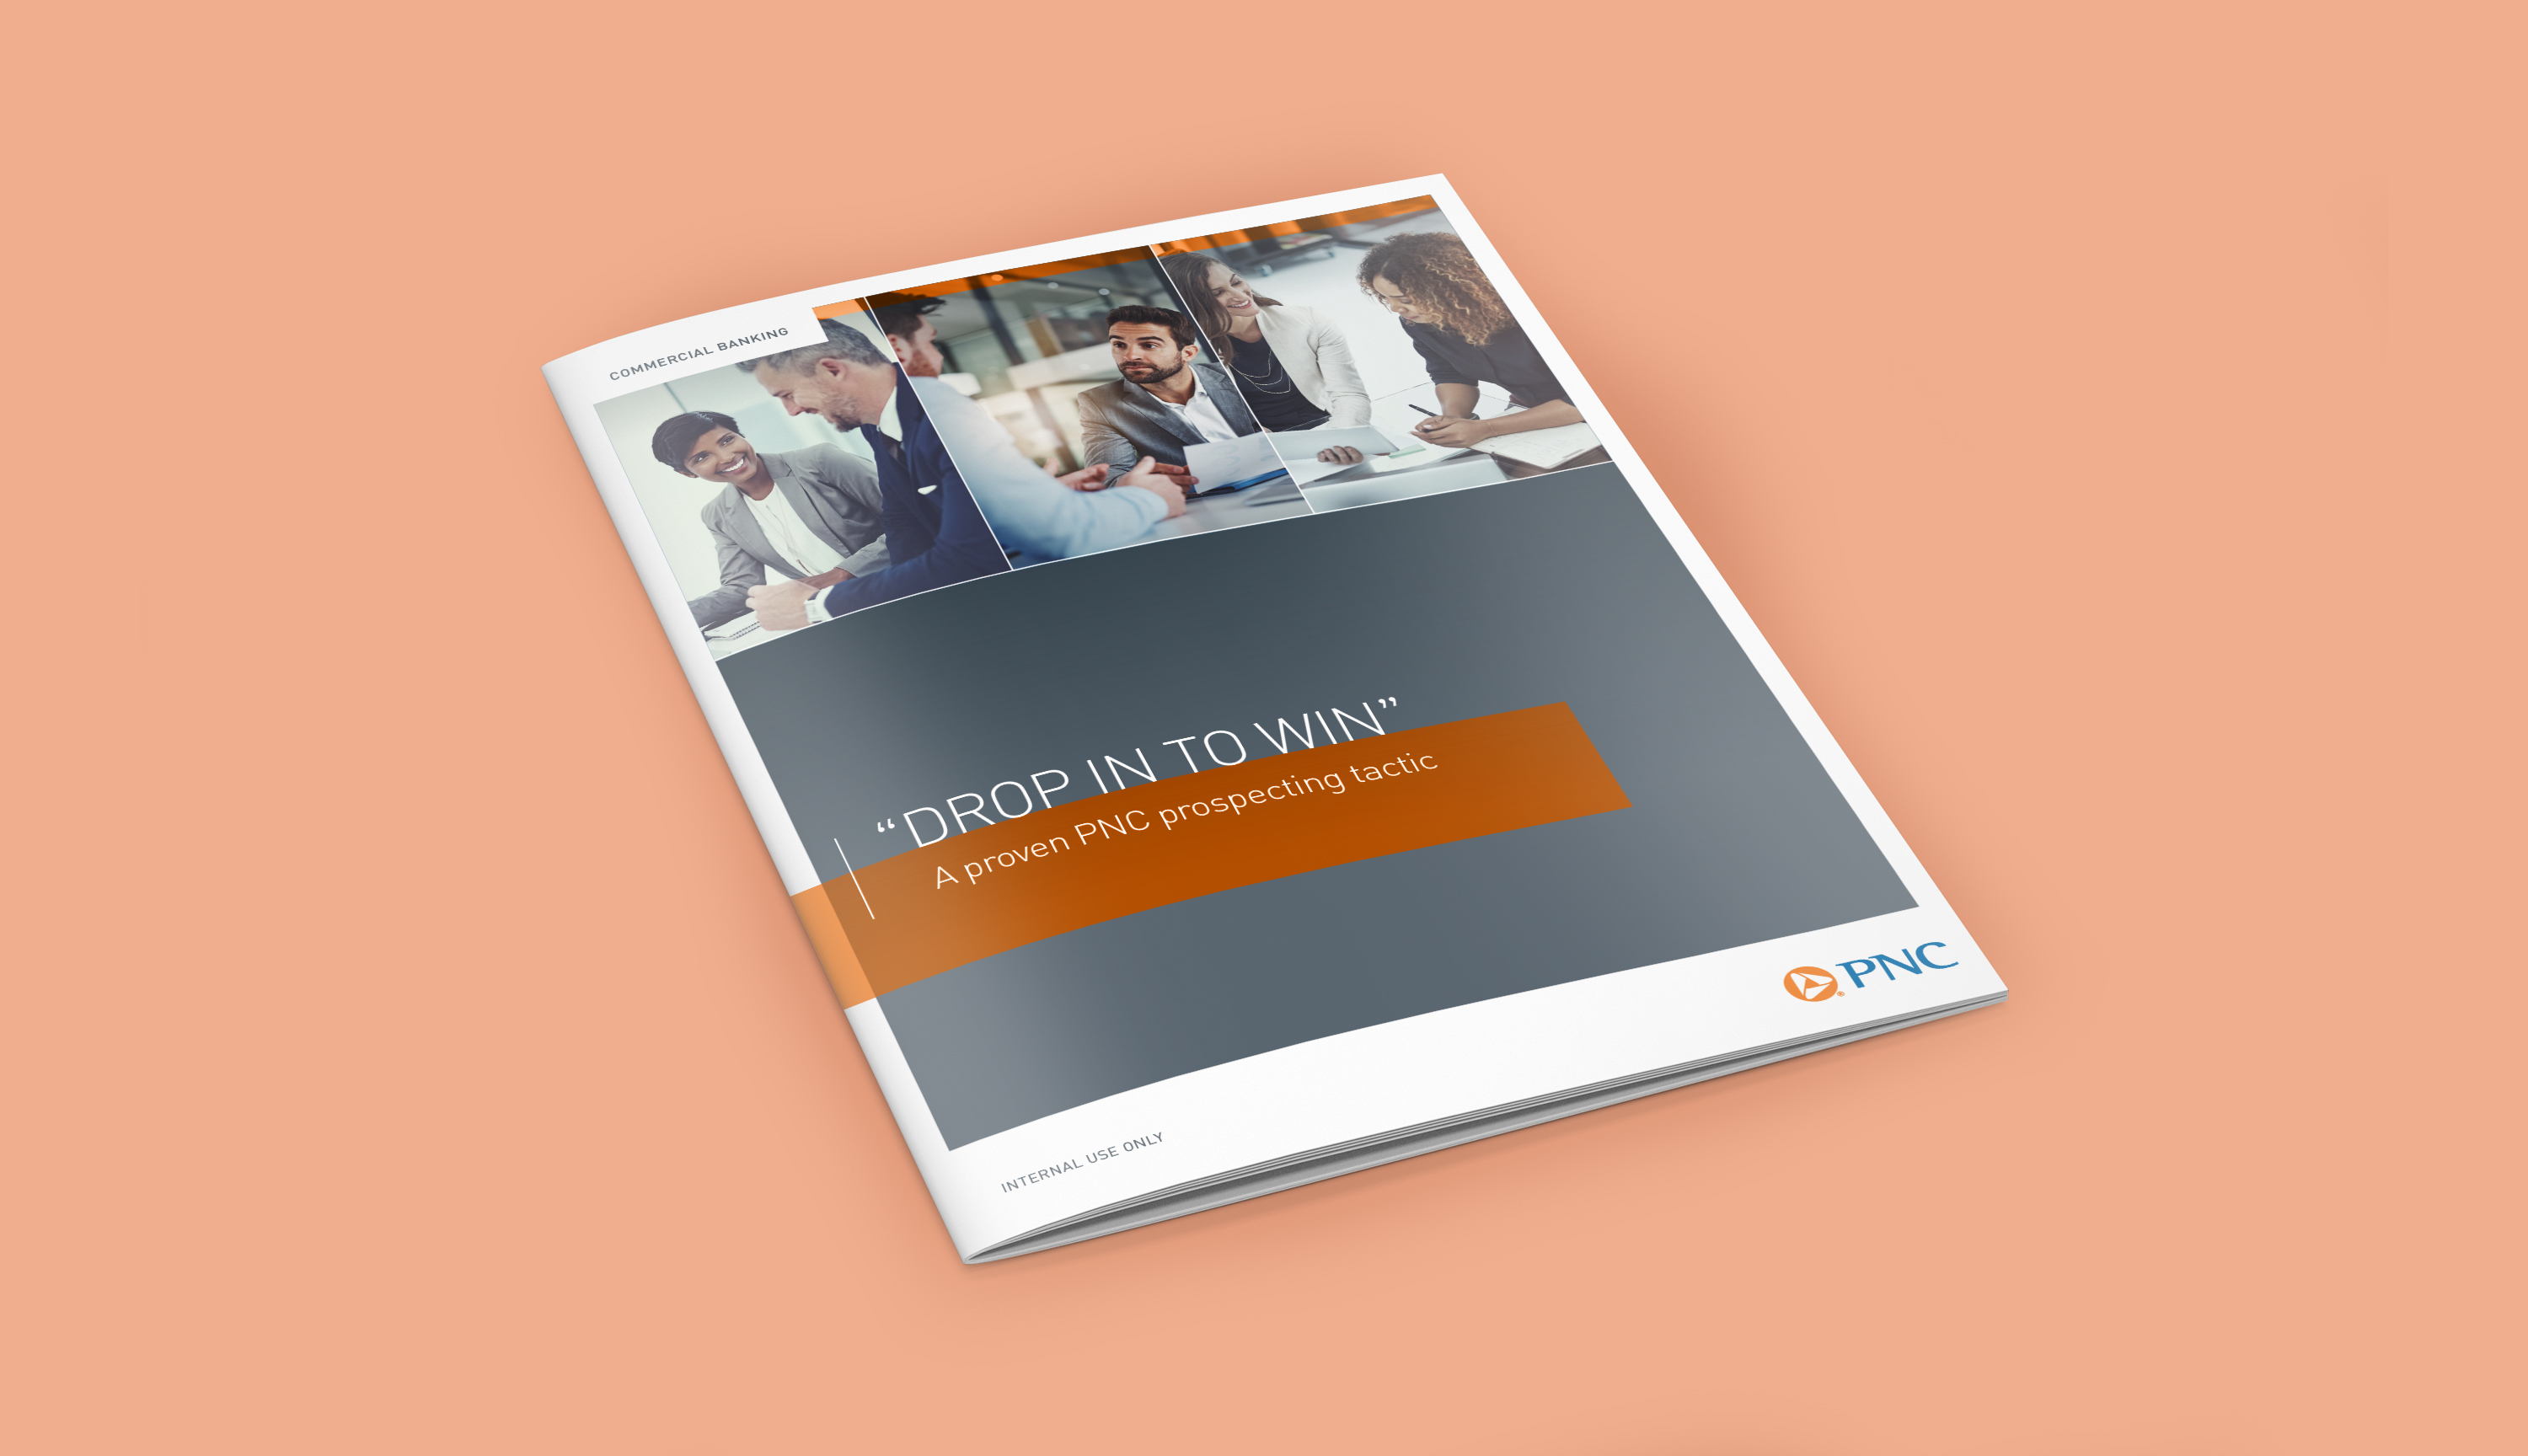 """A mockup of a brochure cover over a salmon-colored background. The cover is a modern design with a gray background, 3 images of business people along the top of the page, and an orange bar behind the title of the brochure. The title is """"Drop In to Win: A Proven PNC Prospecting Tactic."""""""